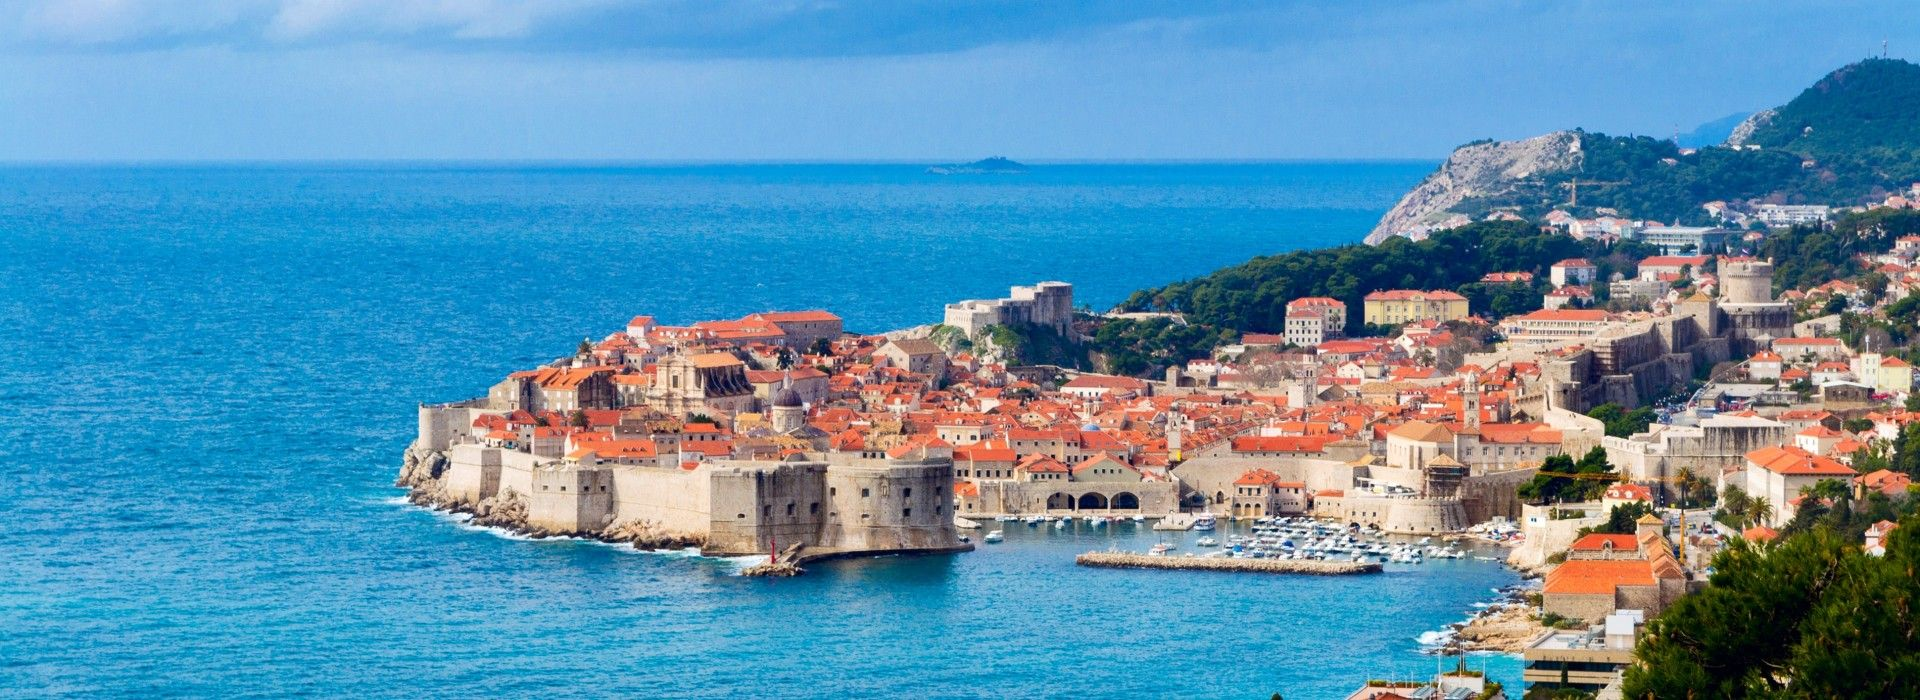 Cultural, religious and historic sites Tours in Dubrovnik